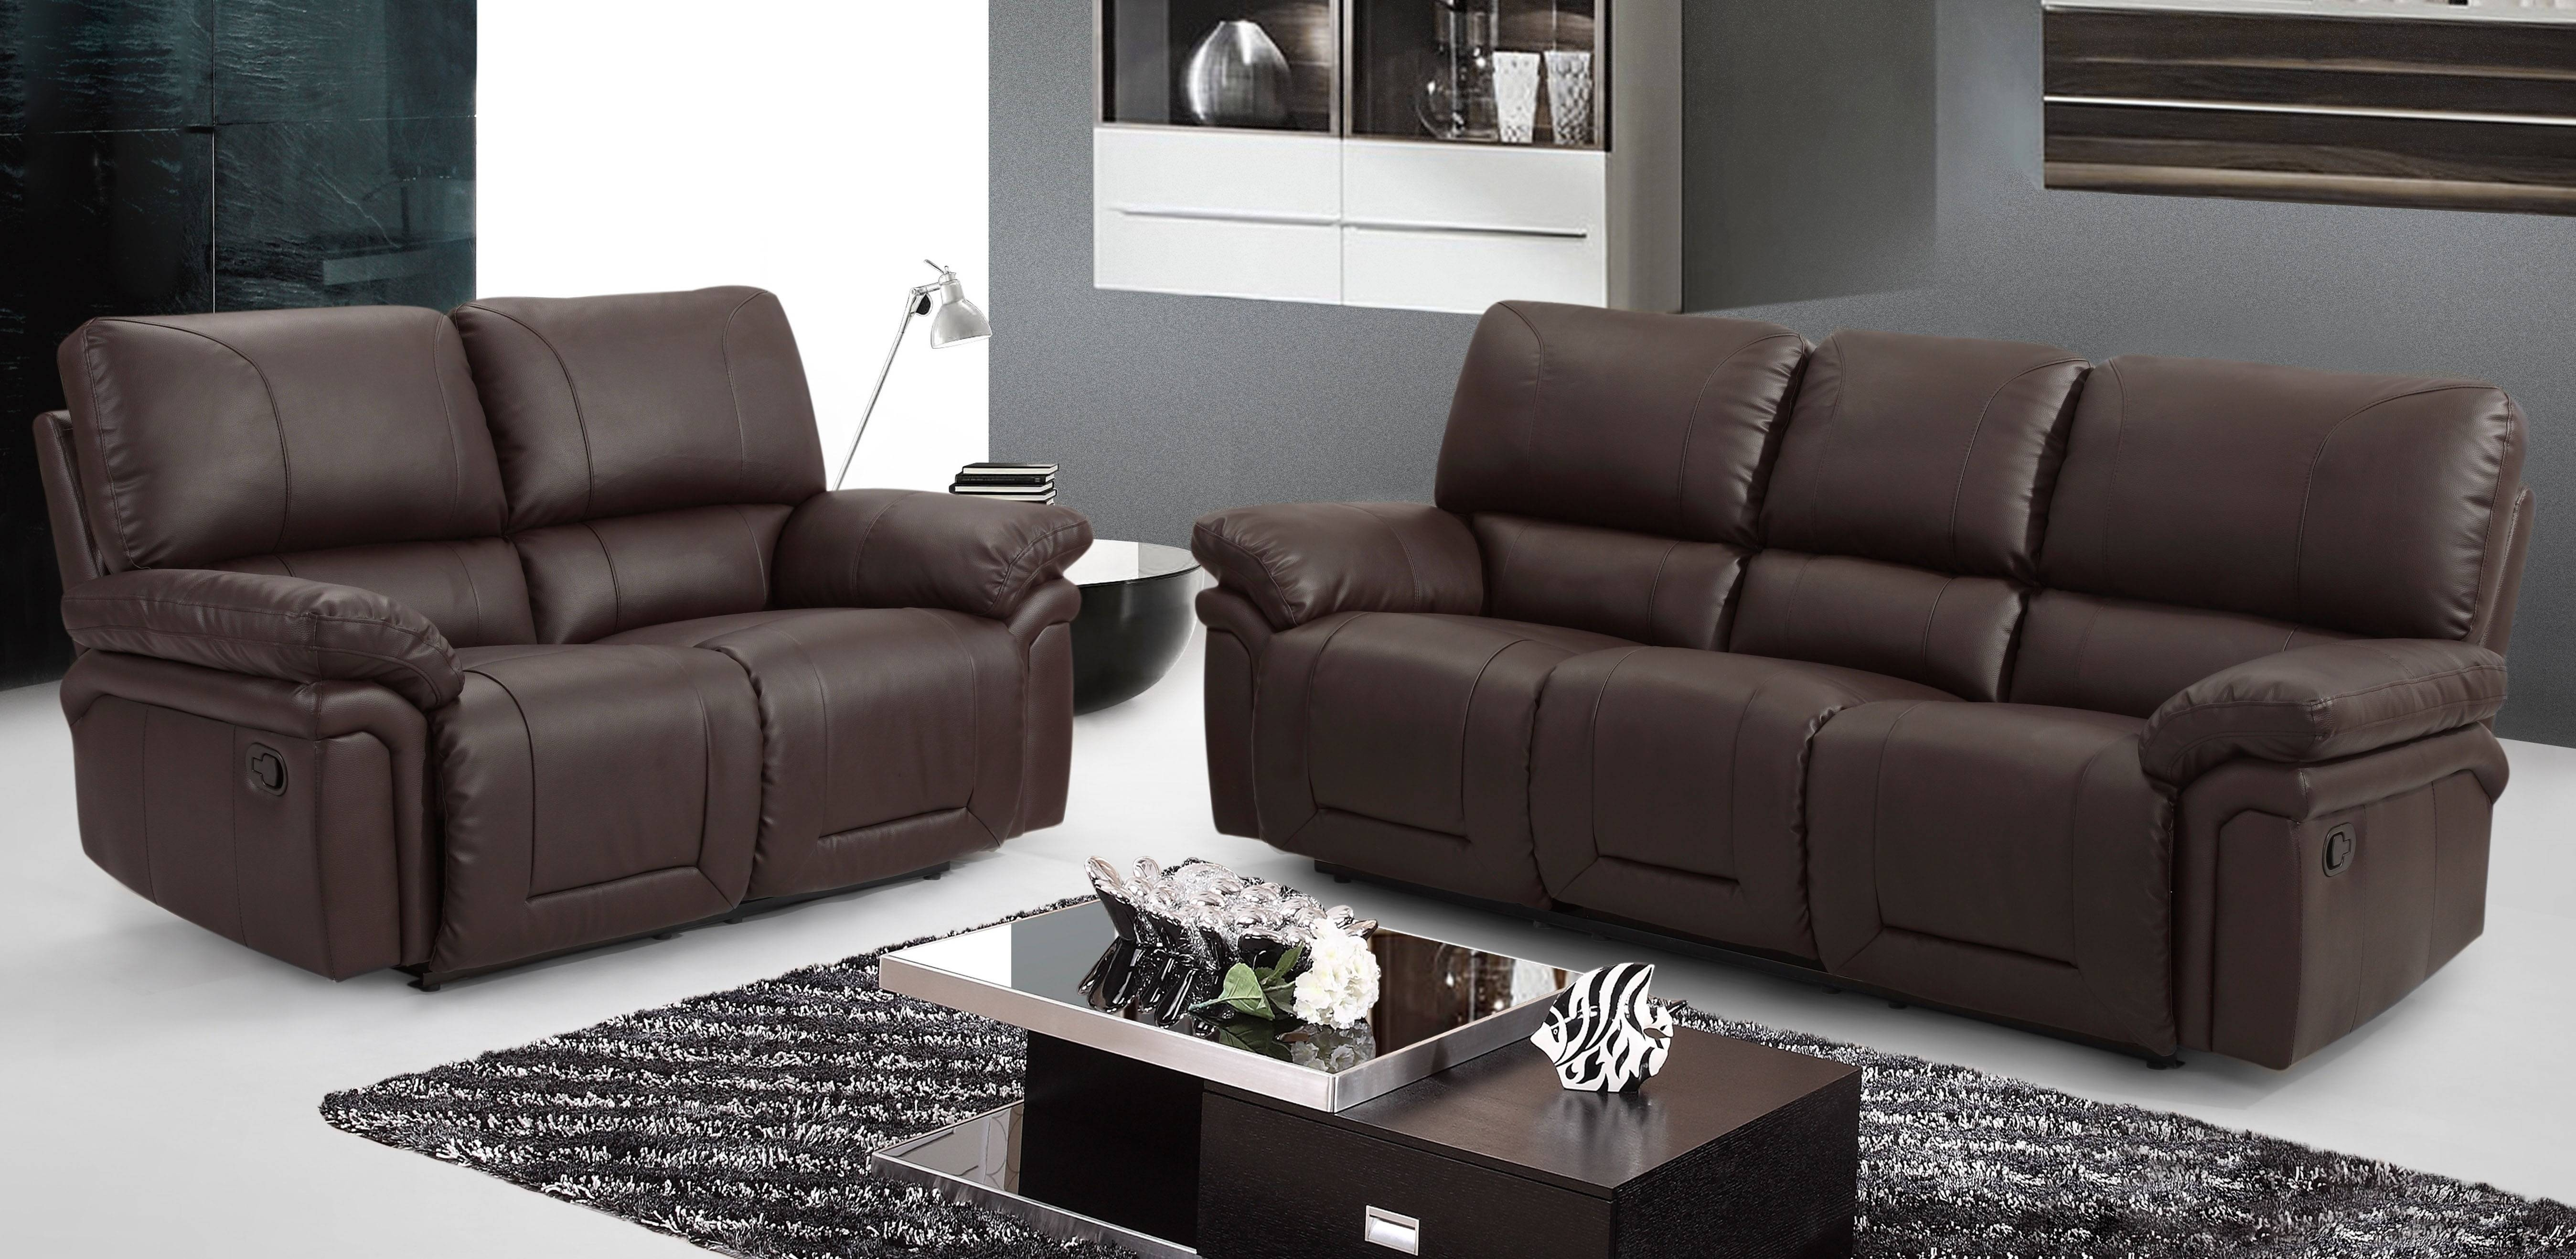 Furniture: Beautiful Sectional Sofas Cheap For Living Room inside Cool Cheap Sofas (Image 11 of 30)